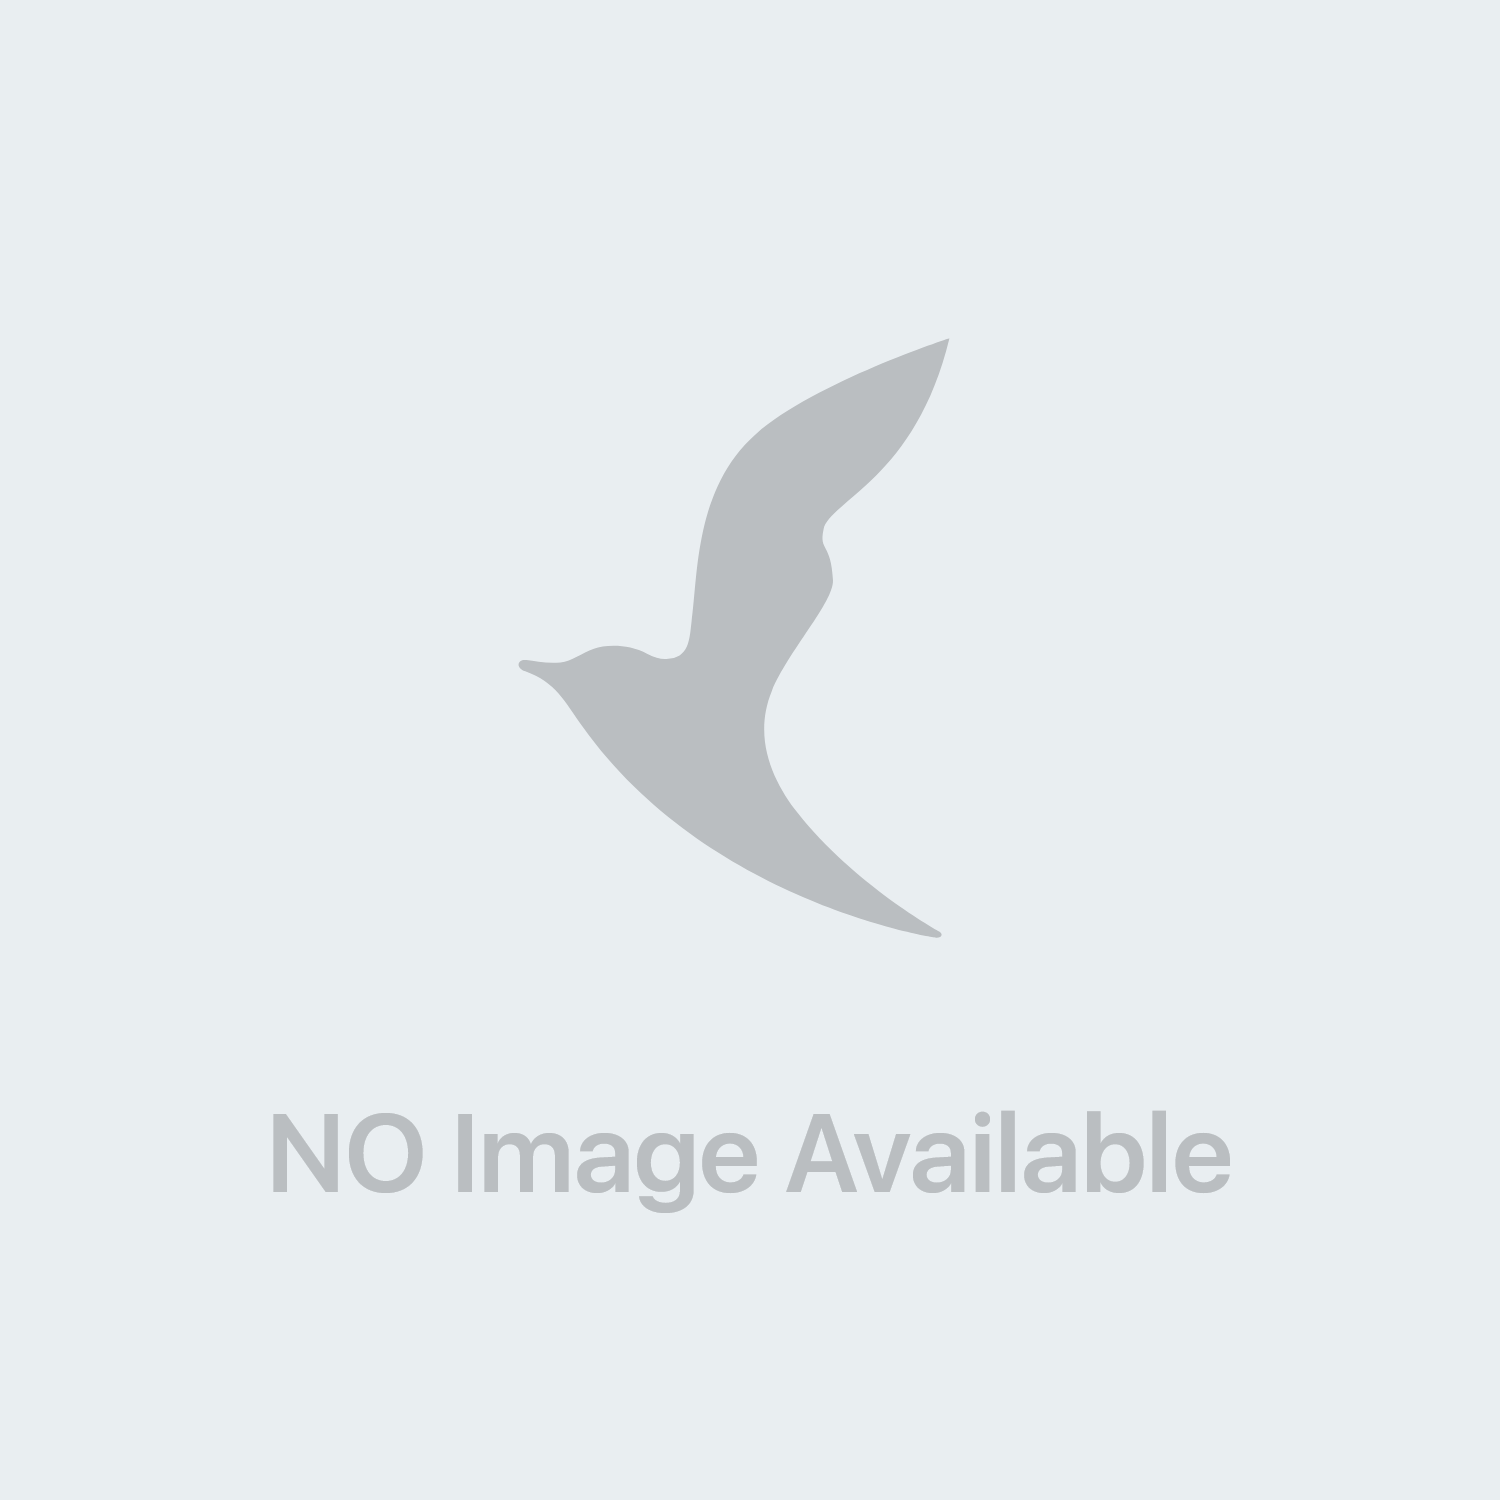 Rilastil Aqua Optimale Crema Viso Idratante 50 ml